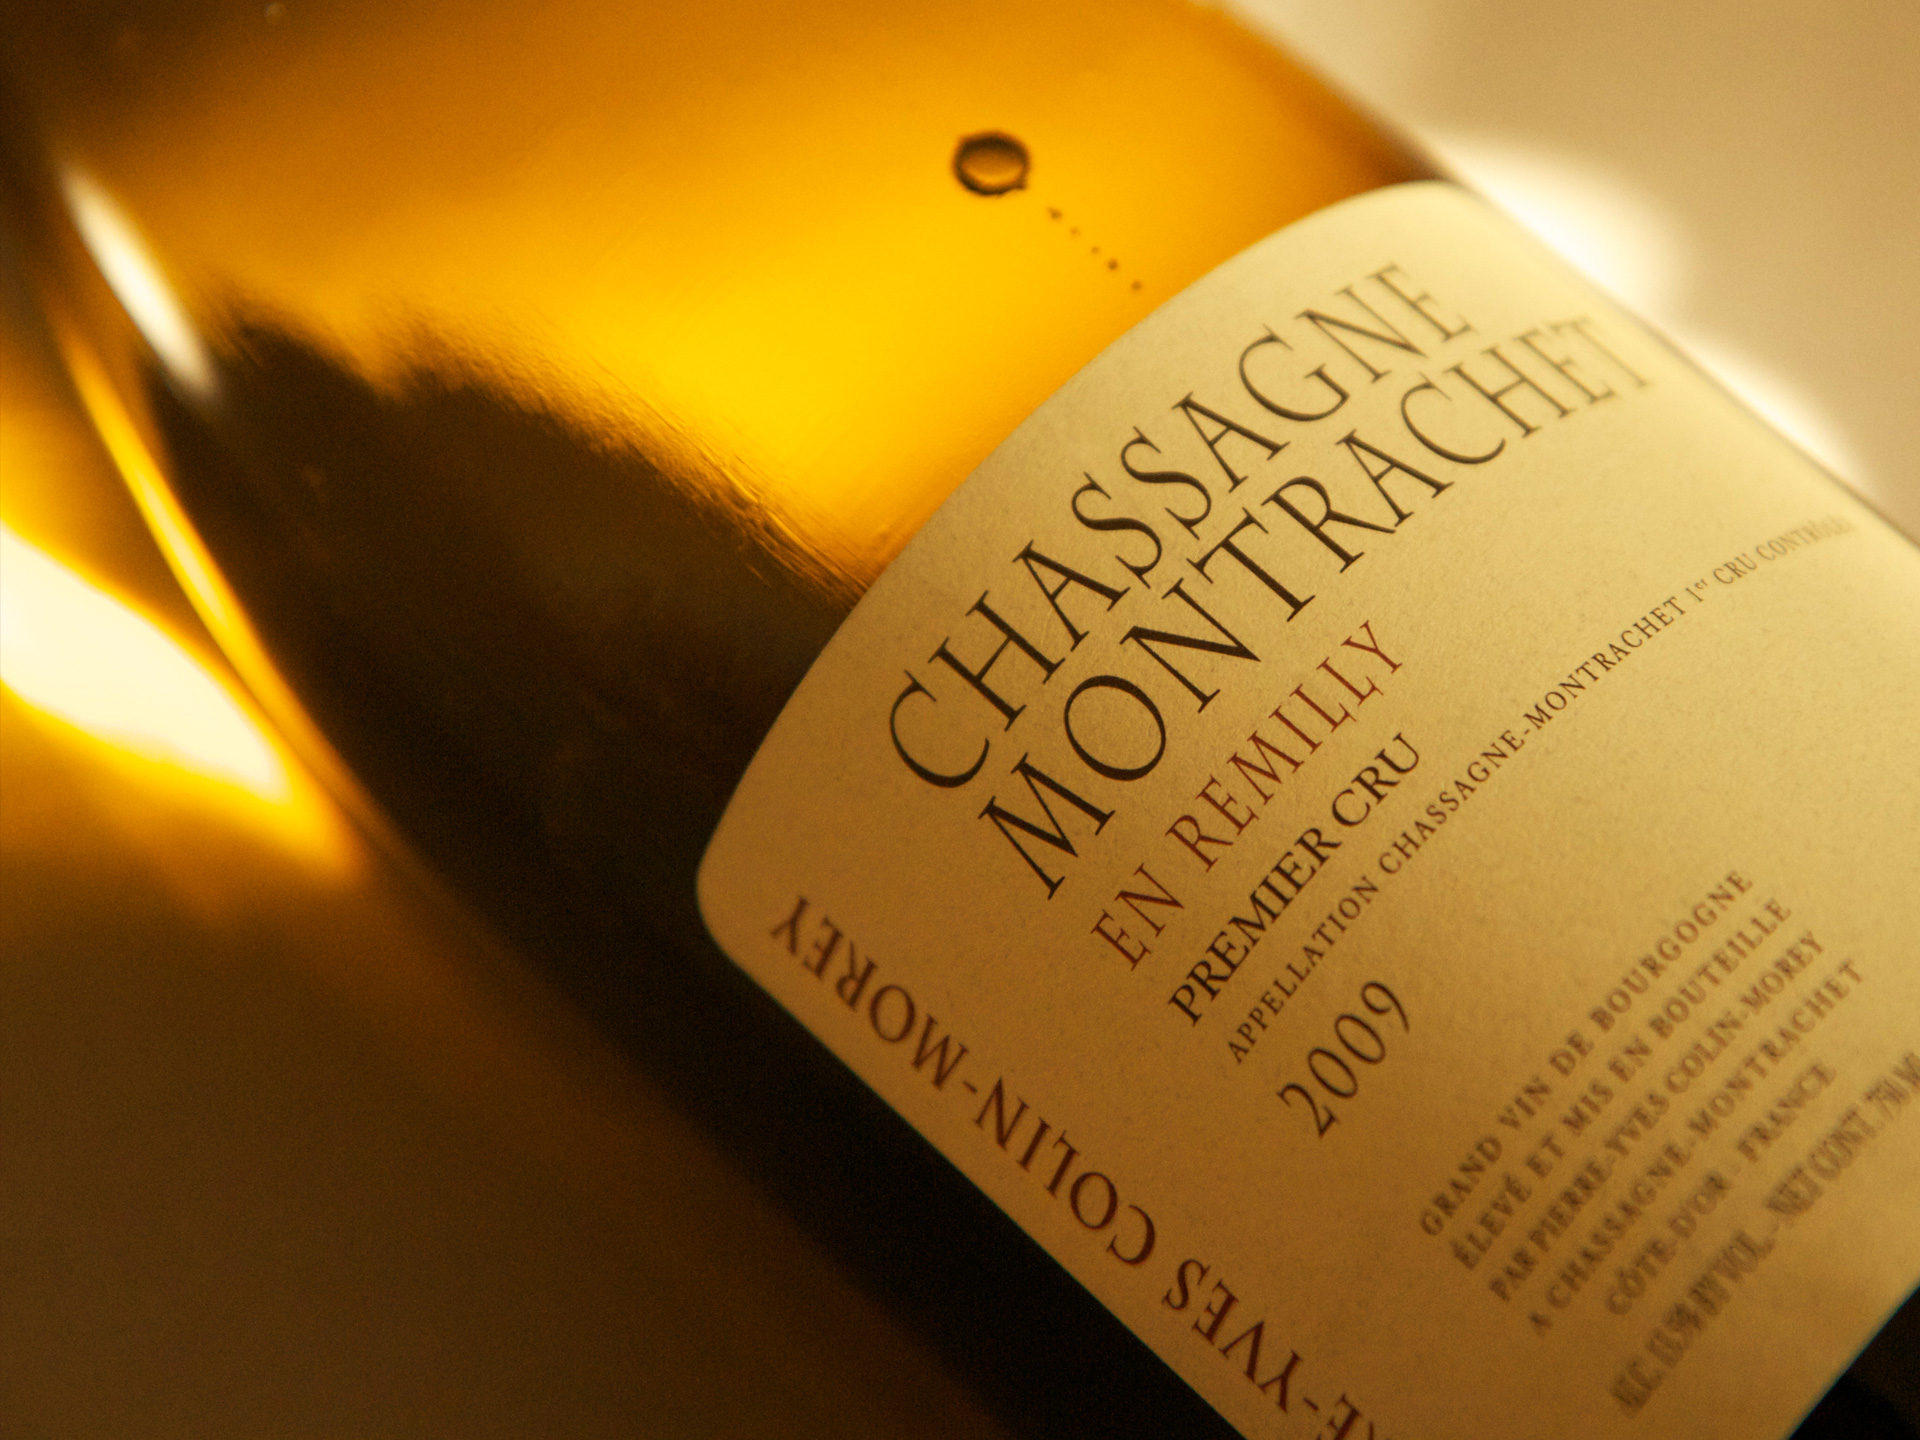 Chassagne Montrachet pierre-yves-colin-morey wine photography